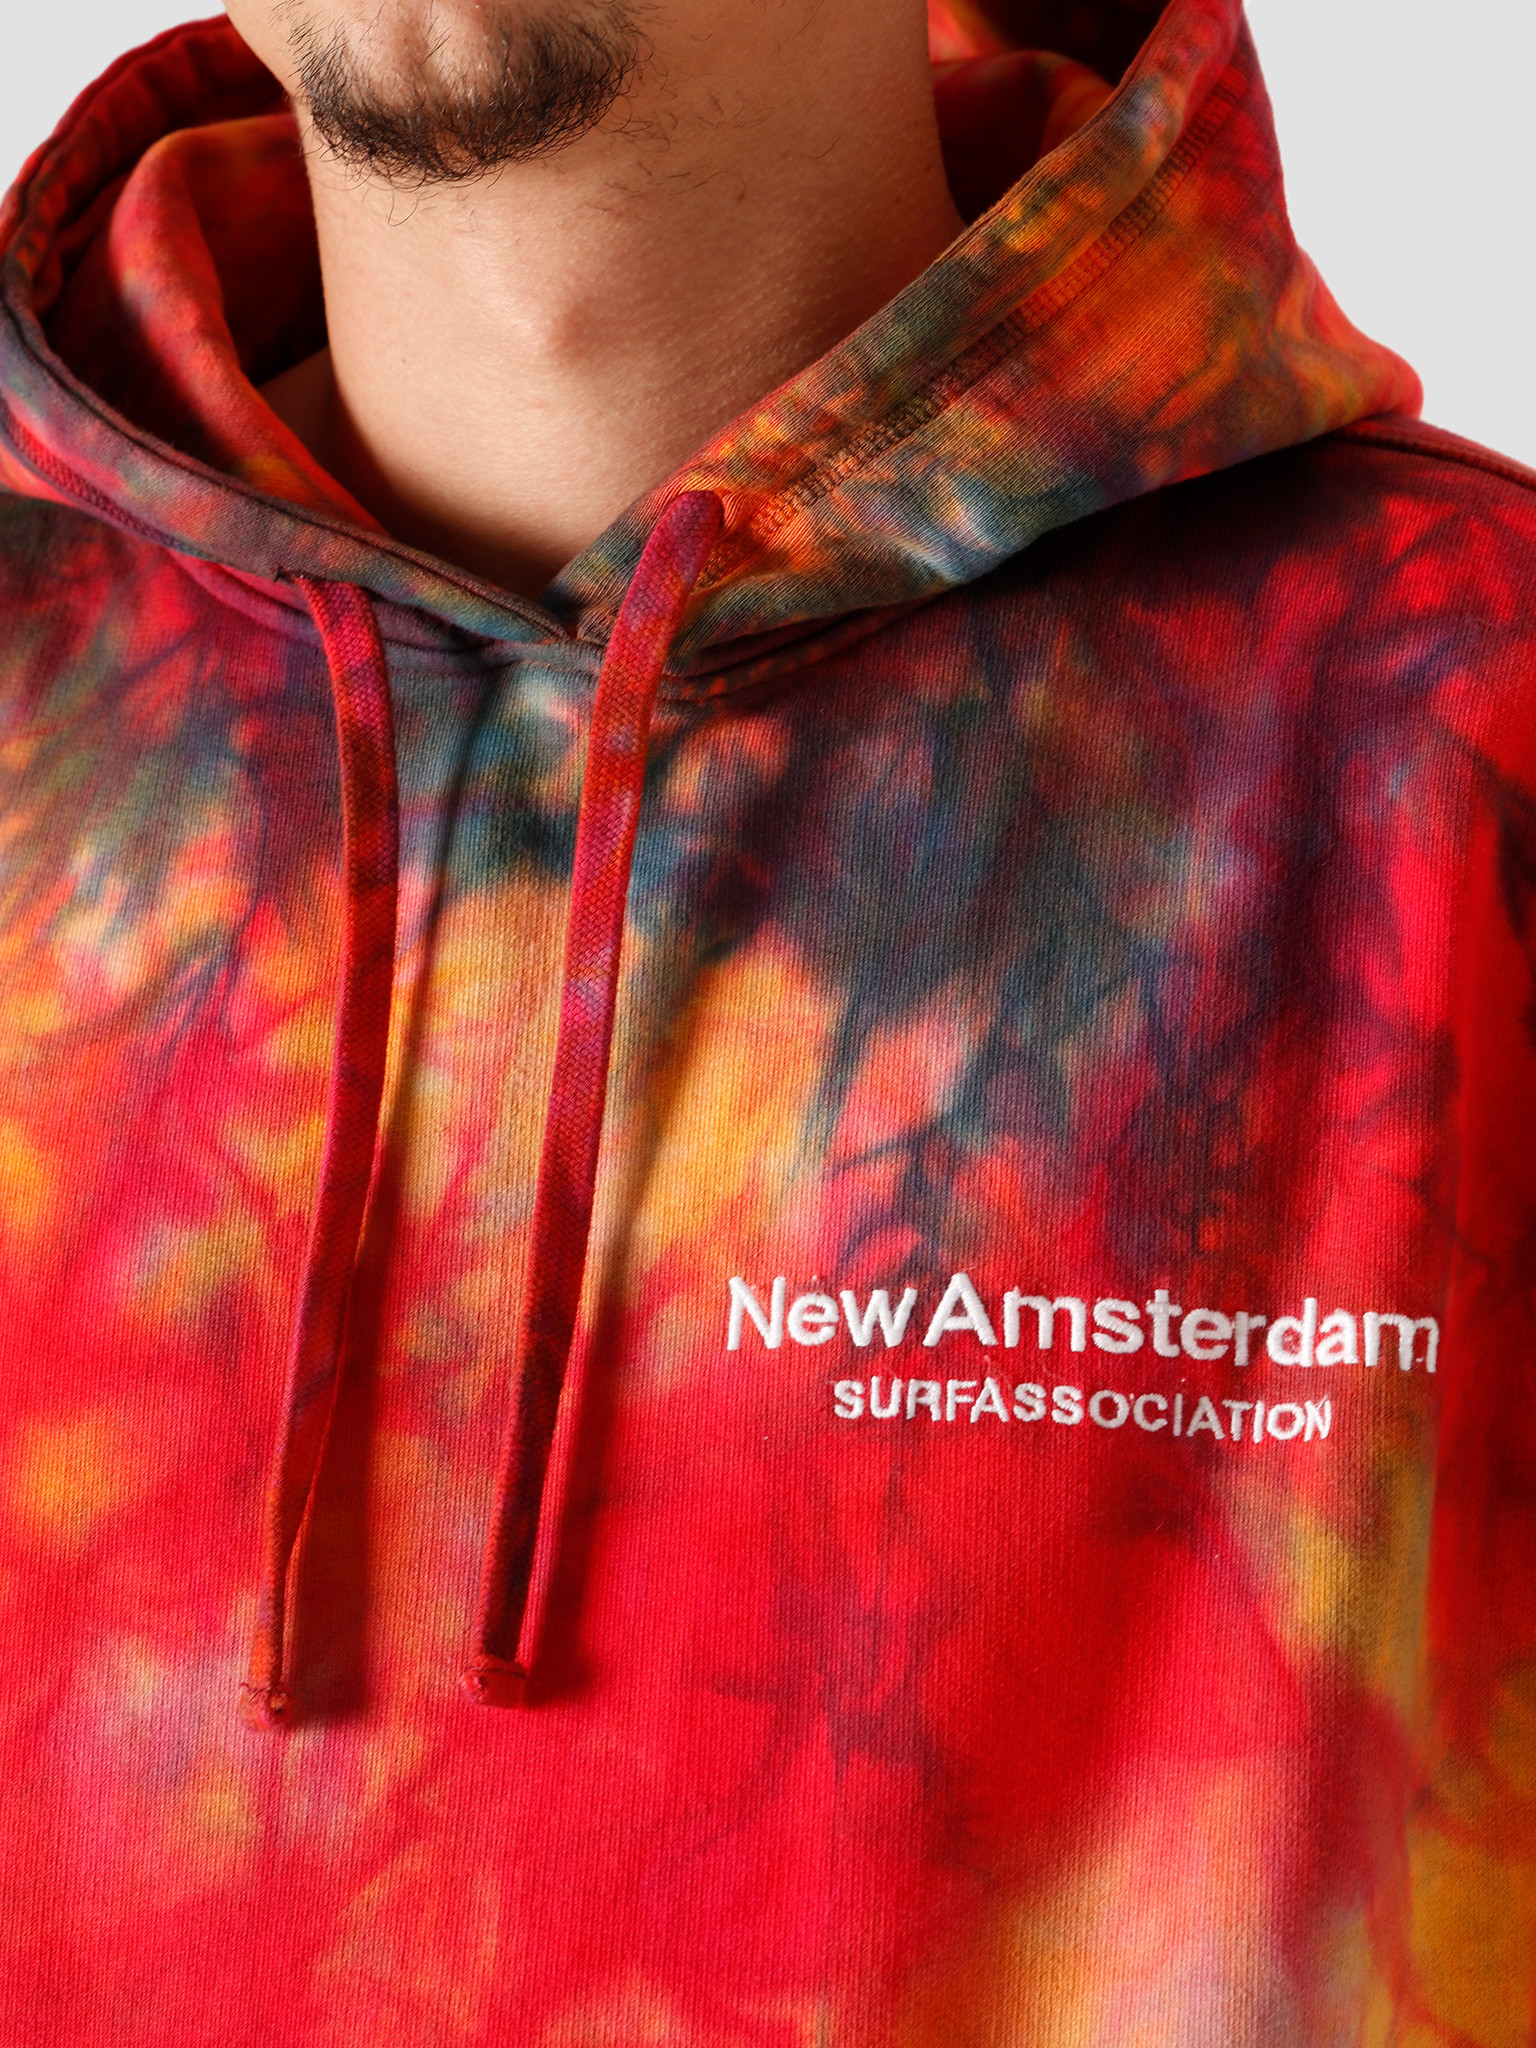 New Amsterdam Surf association New Amsterdam Surf association Logo Hoodie Tie Die Oil 2020066